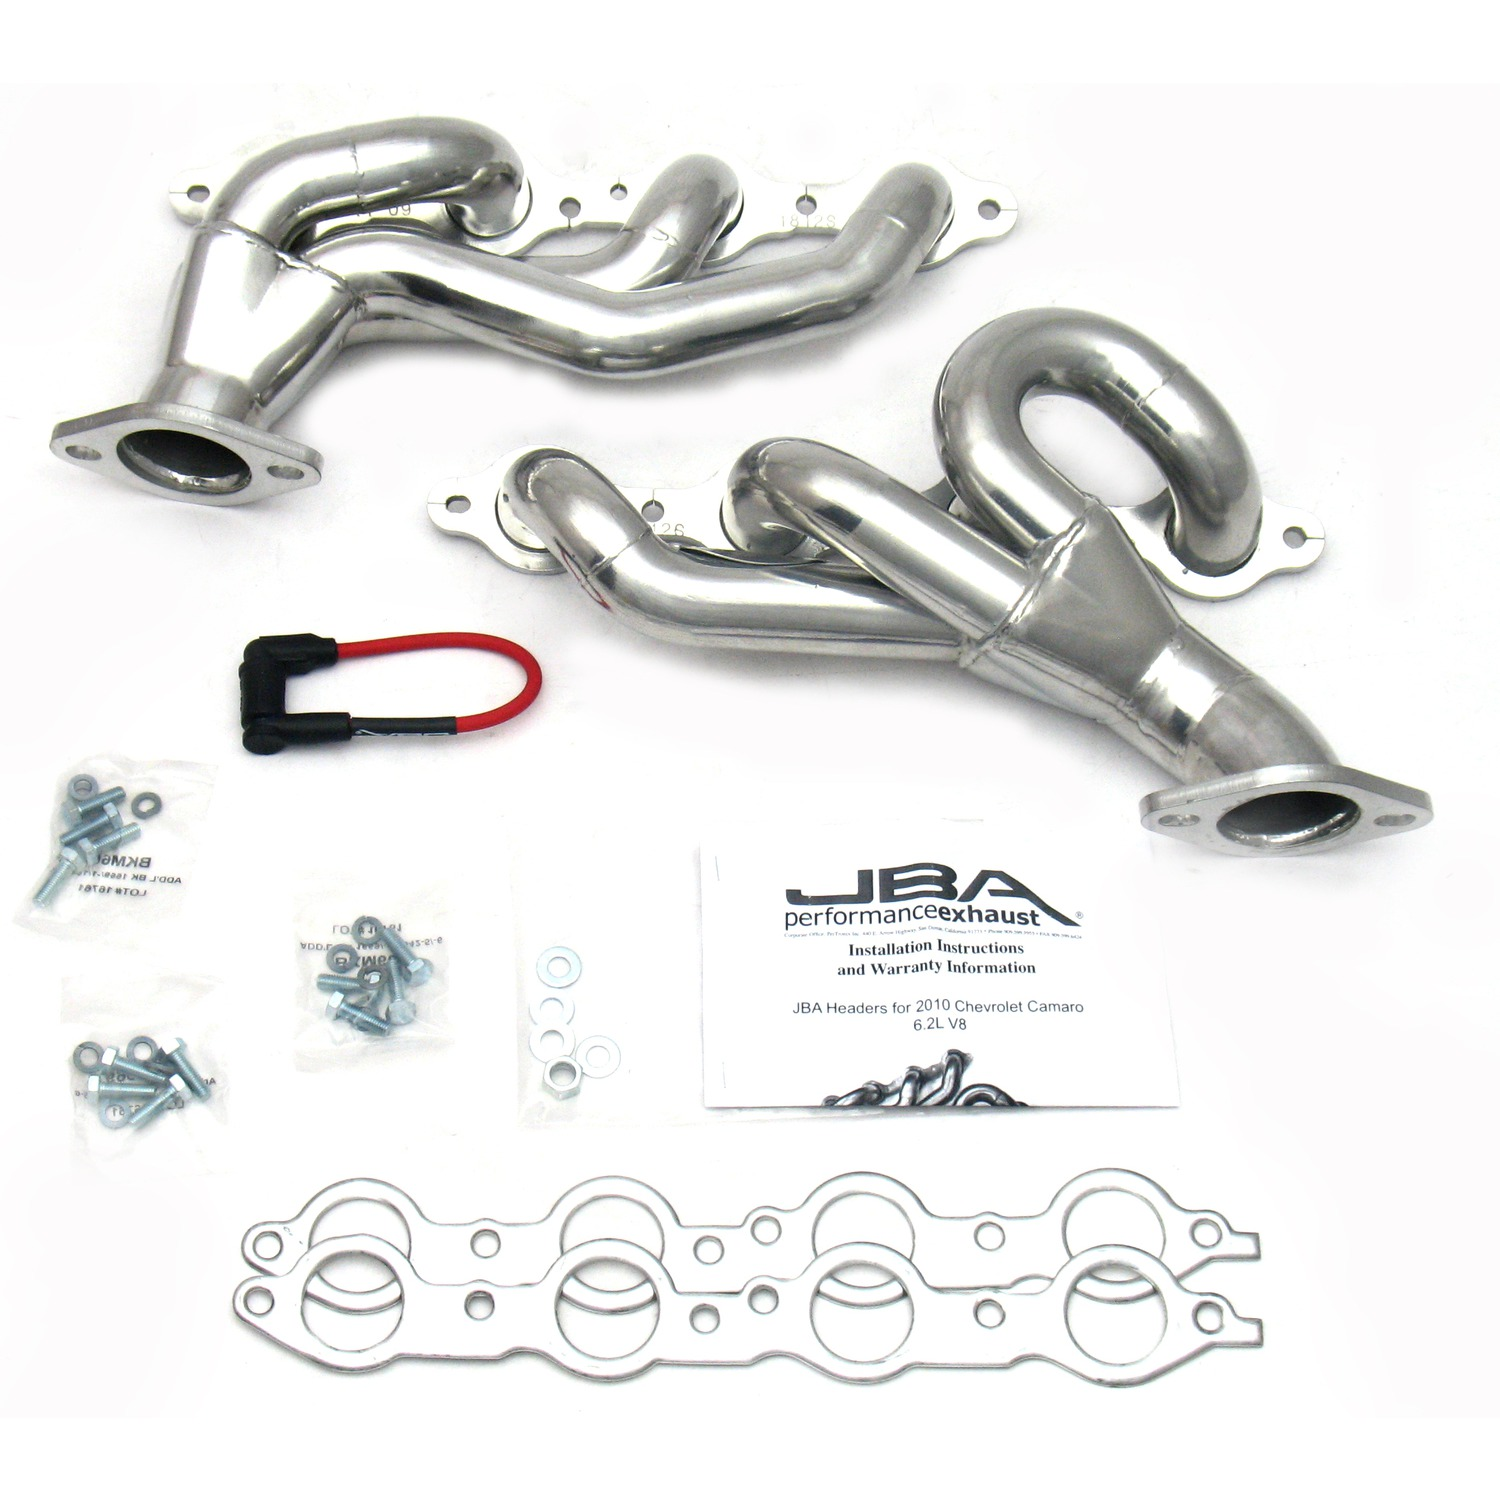 Jba Sjs Stainless Steel Silver Ceramic Shorty Exhaust